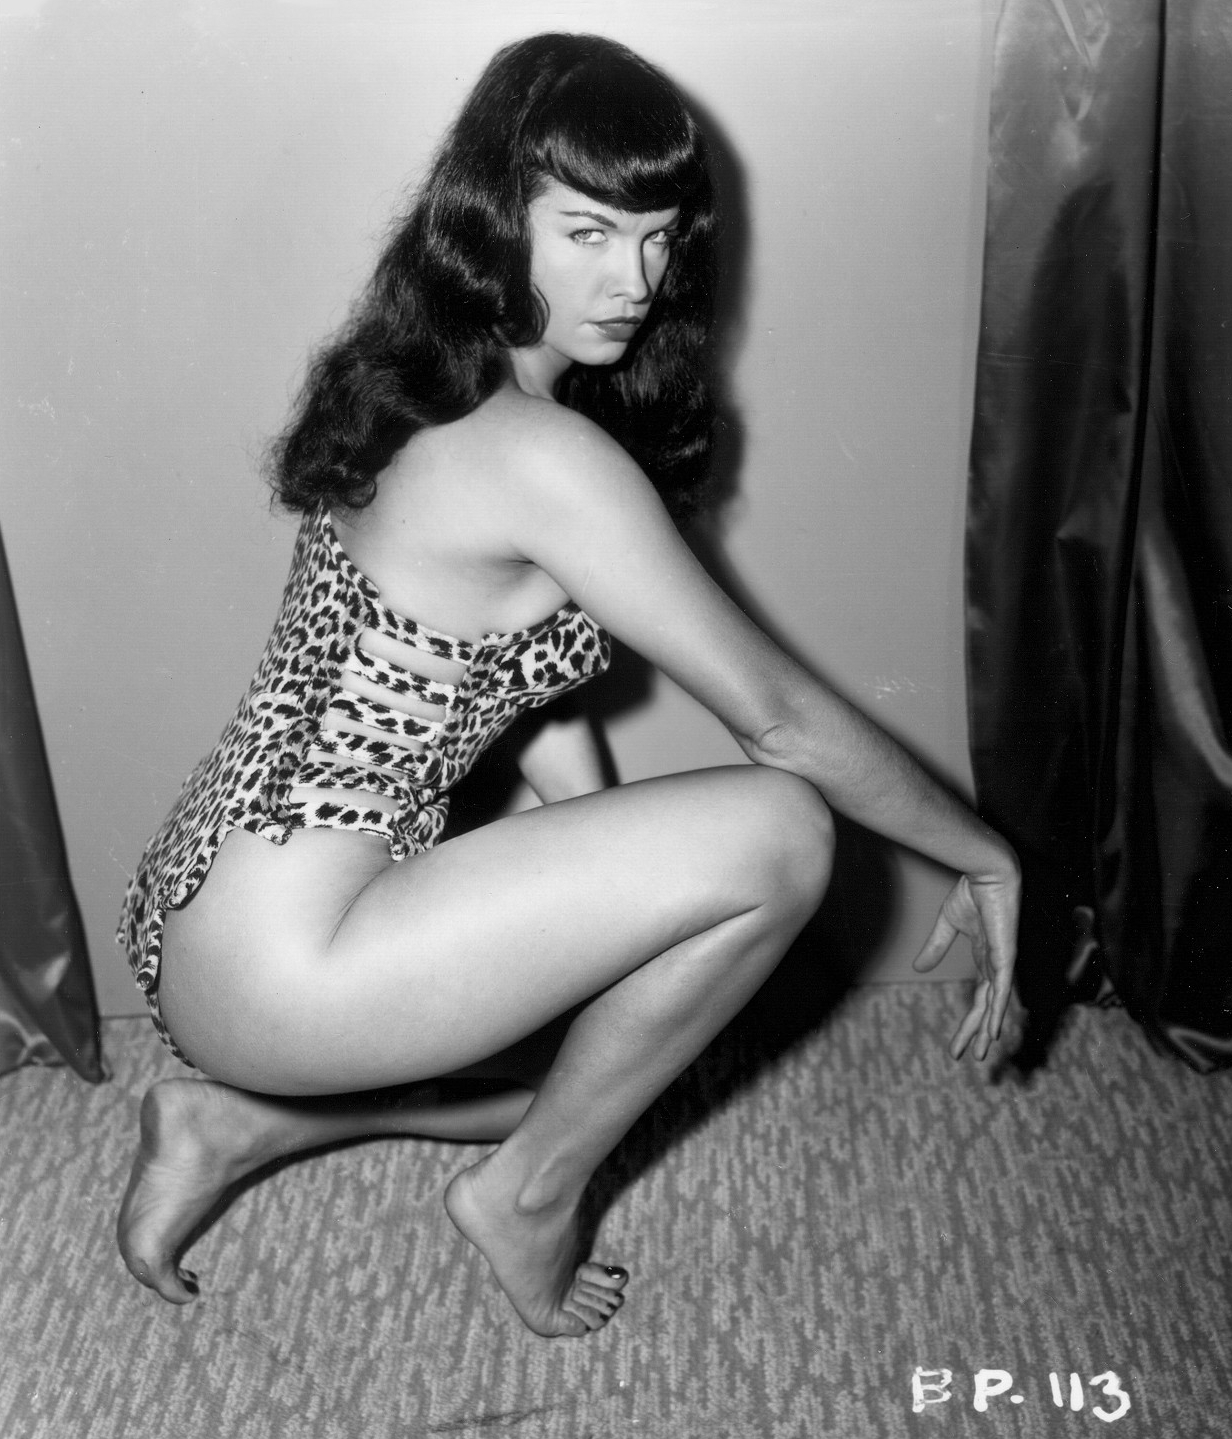 Bettie Page Hd bettie page photo gallery - 29 high quality pics | theplace